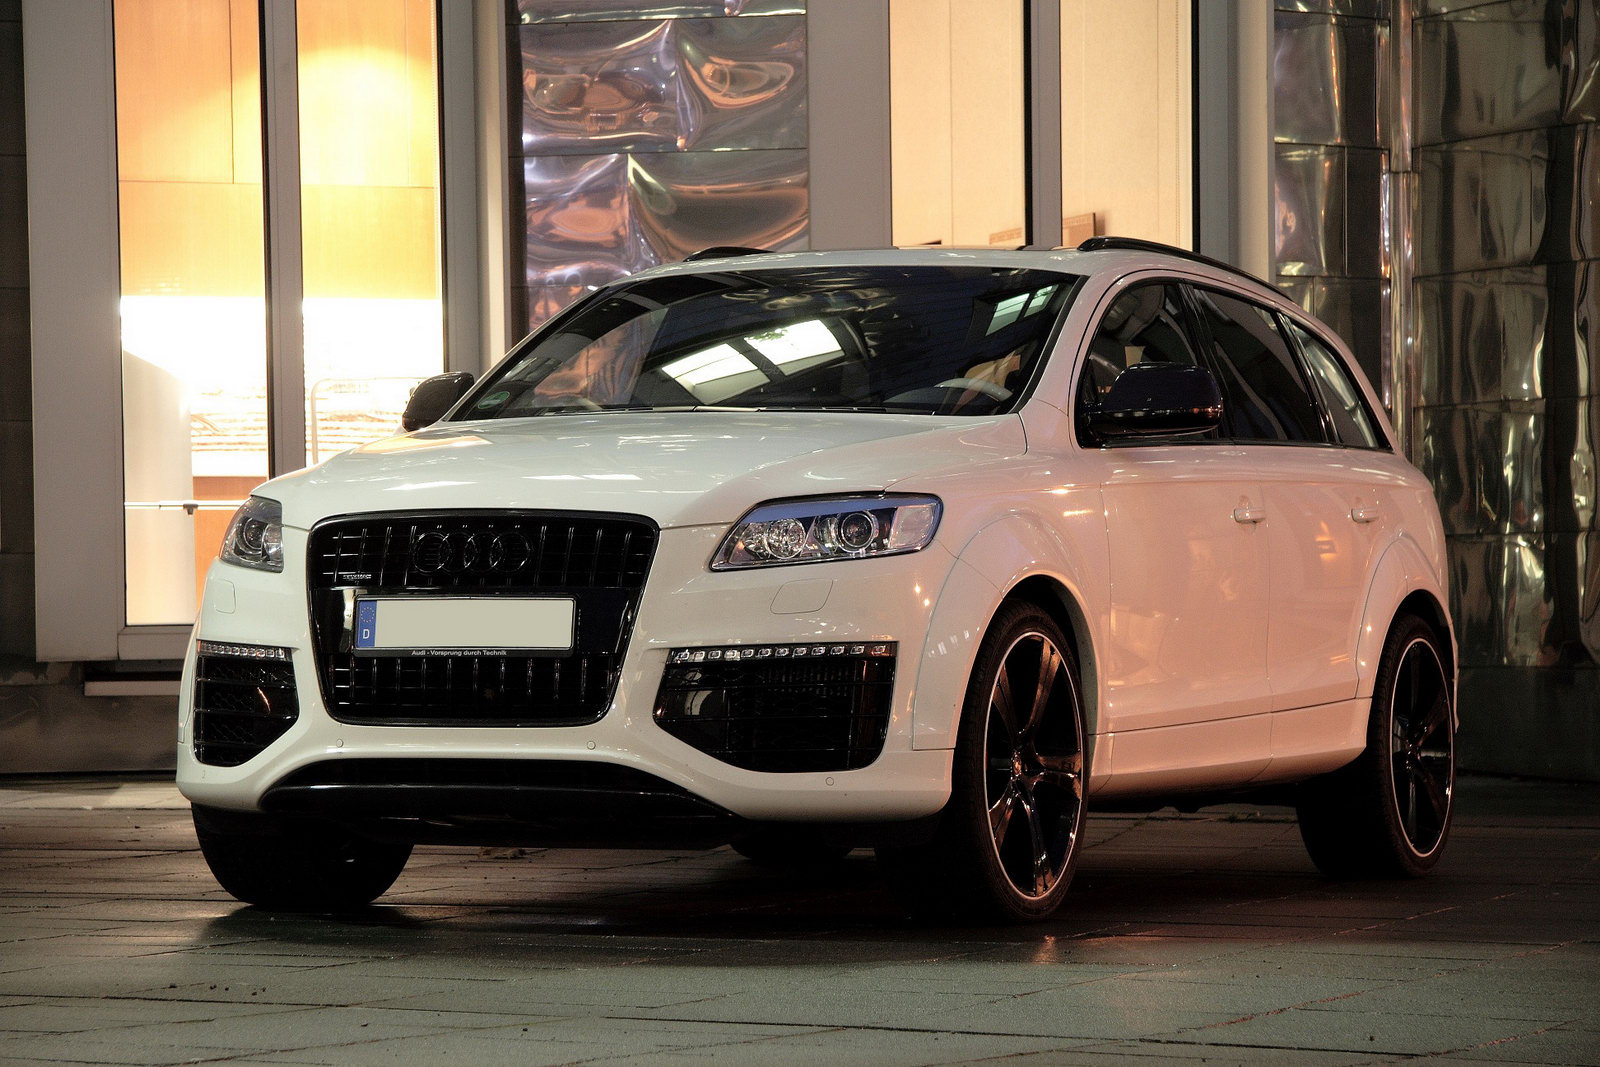 2011 Audi Q7 V12 Tdi Family Edition By Anderson Germany Top Speed